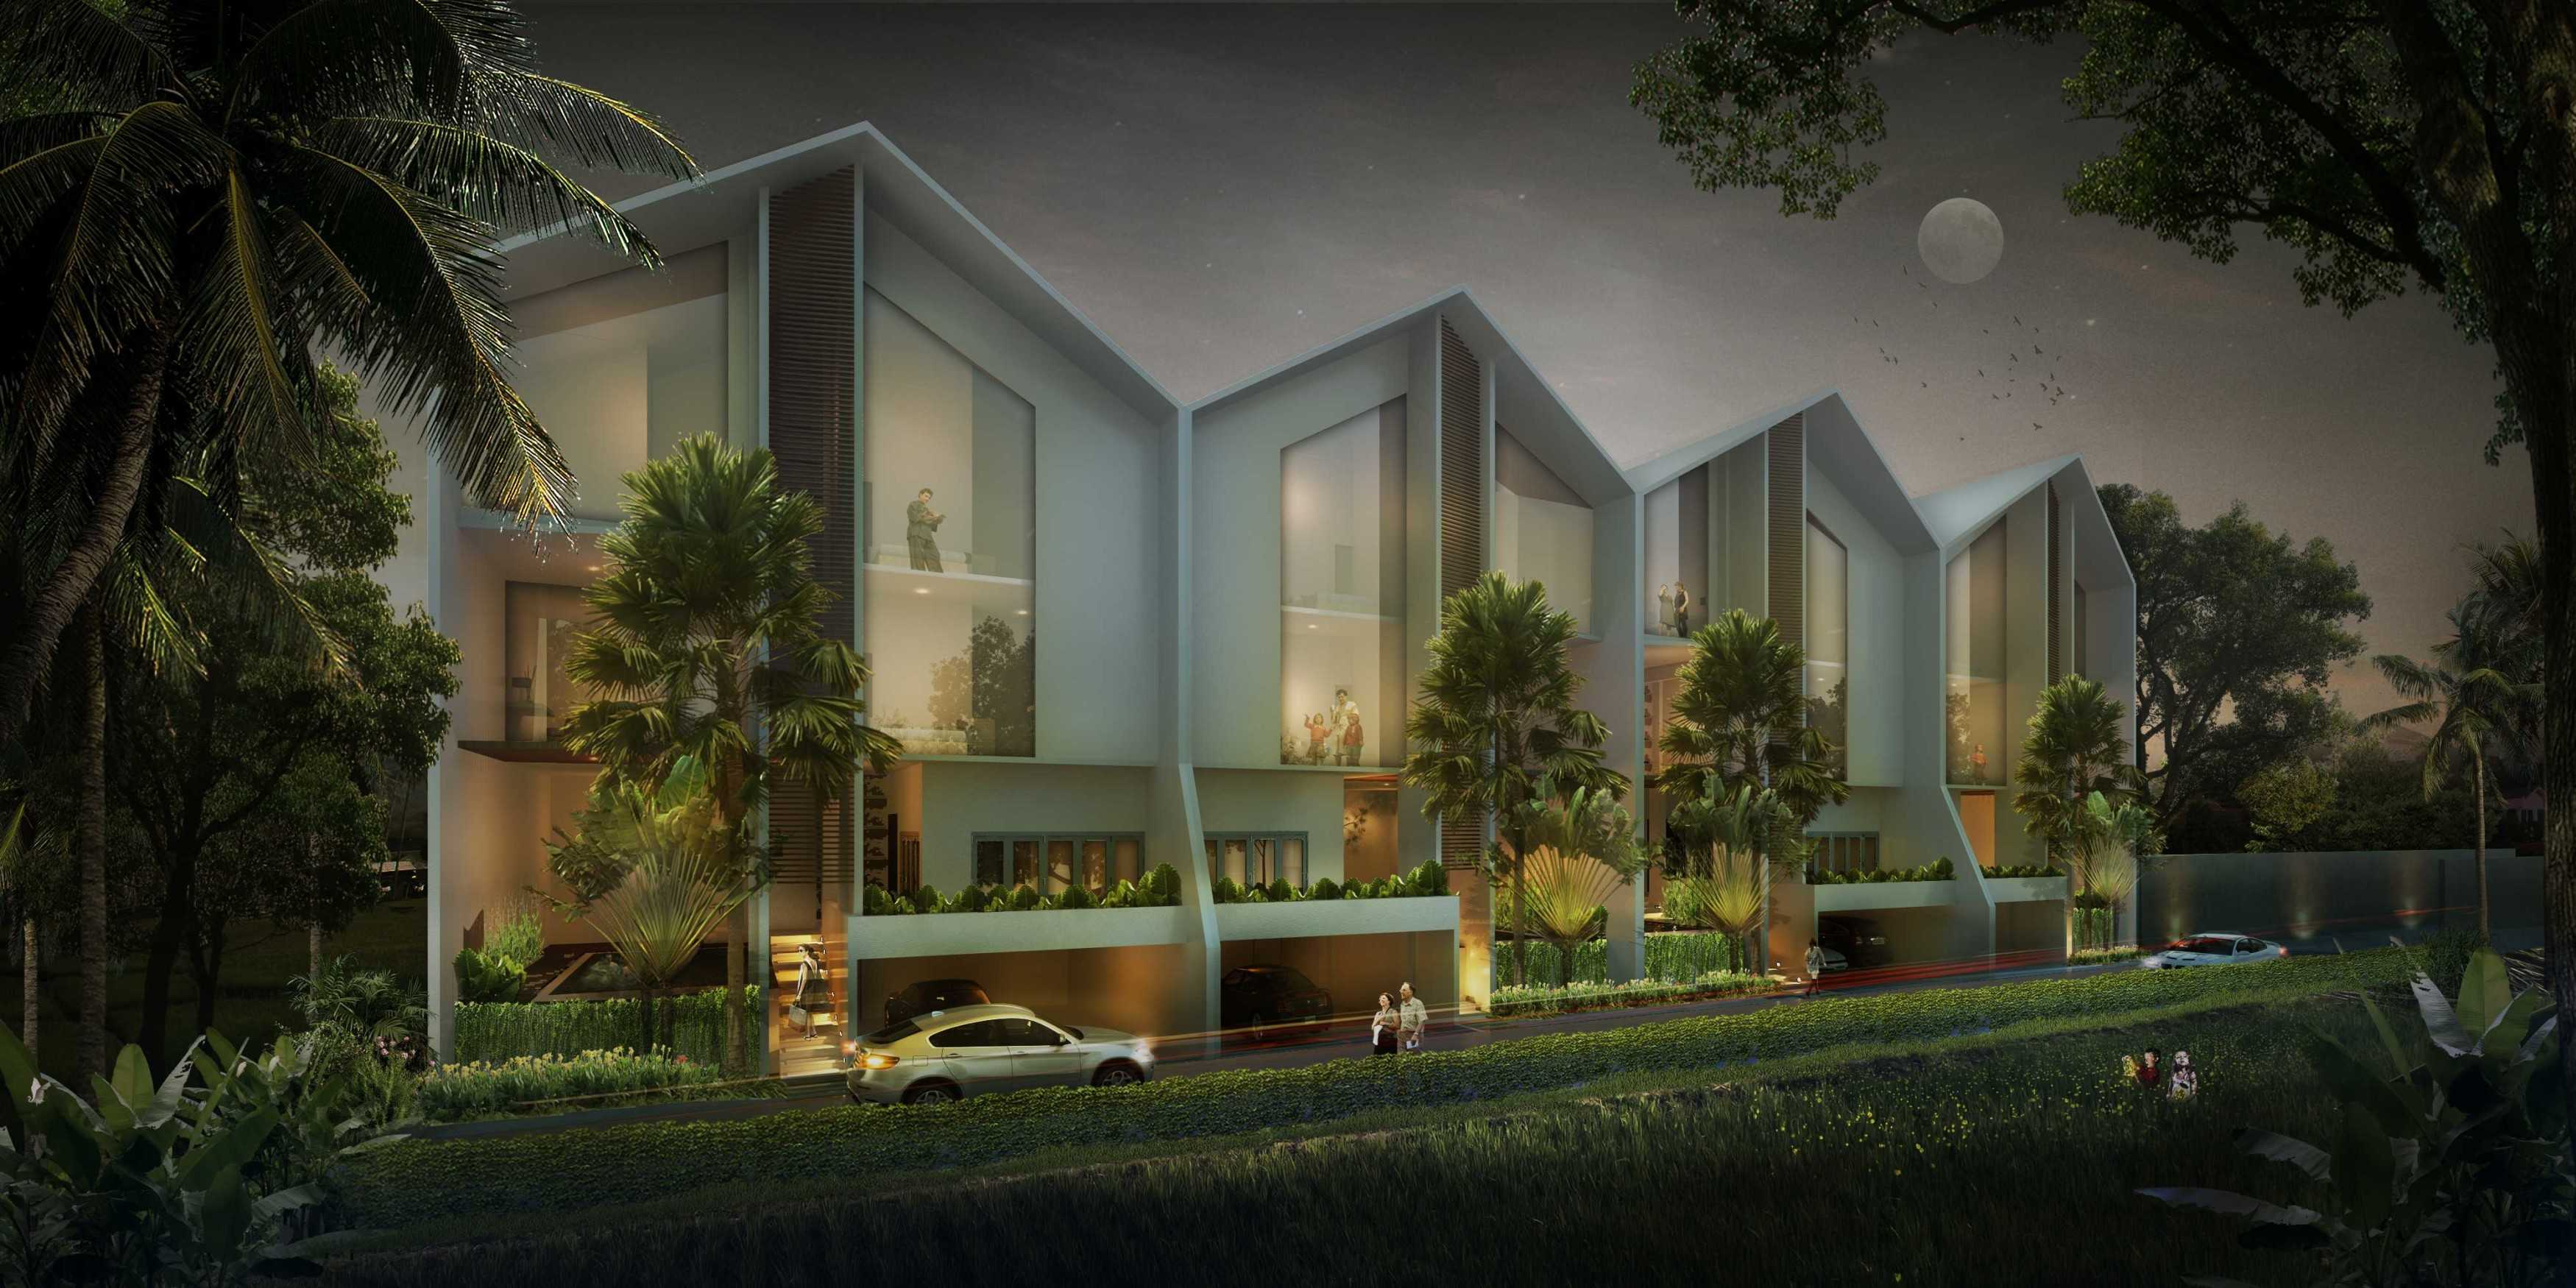 P+Us Architects Studio Omah Ijo Village Condongcatur, Depok Sub-District, Sleman Regency, Special Region Of Yogyakarta, Indonesia Yogyakarta, Indonesia Front View  <P>3D Visual 003</p> 16986